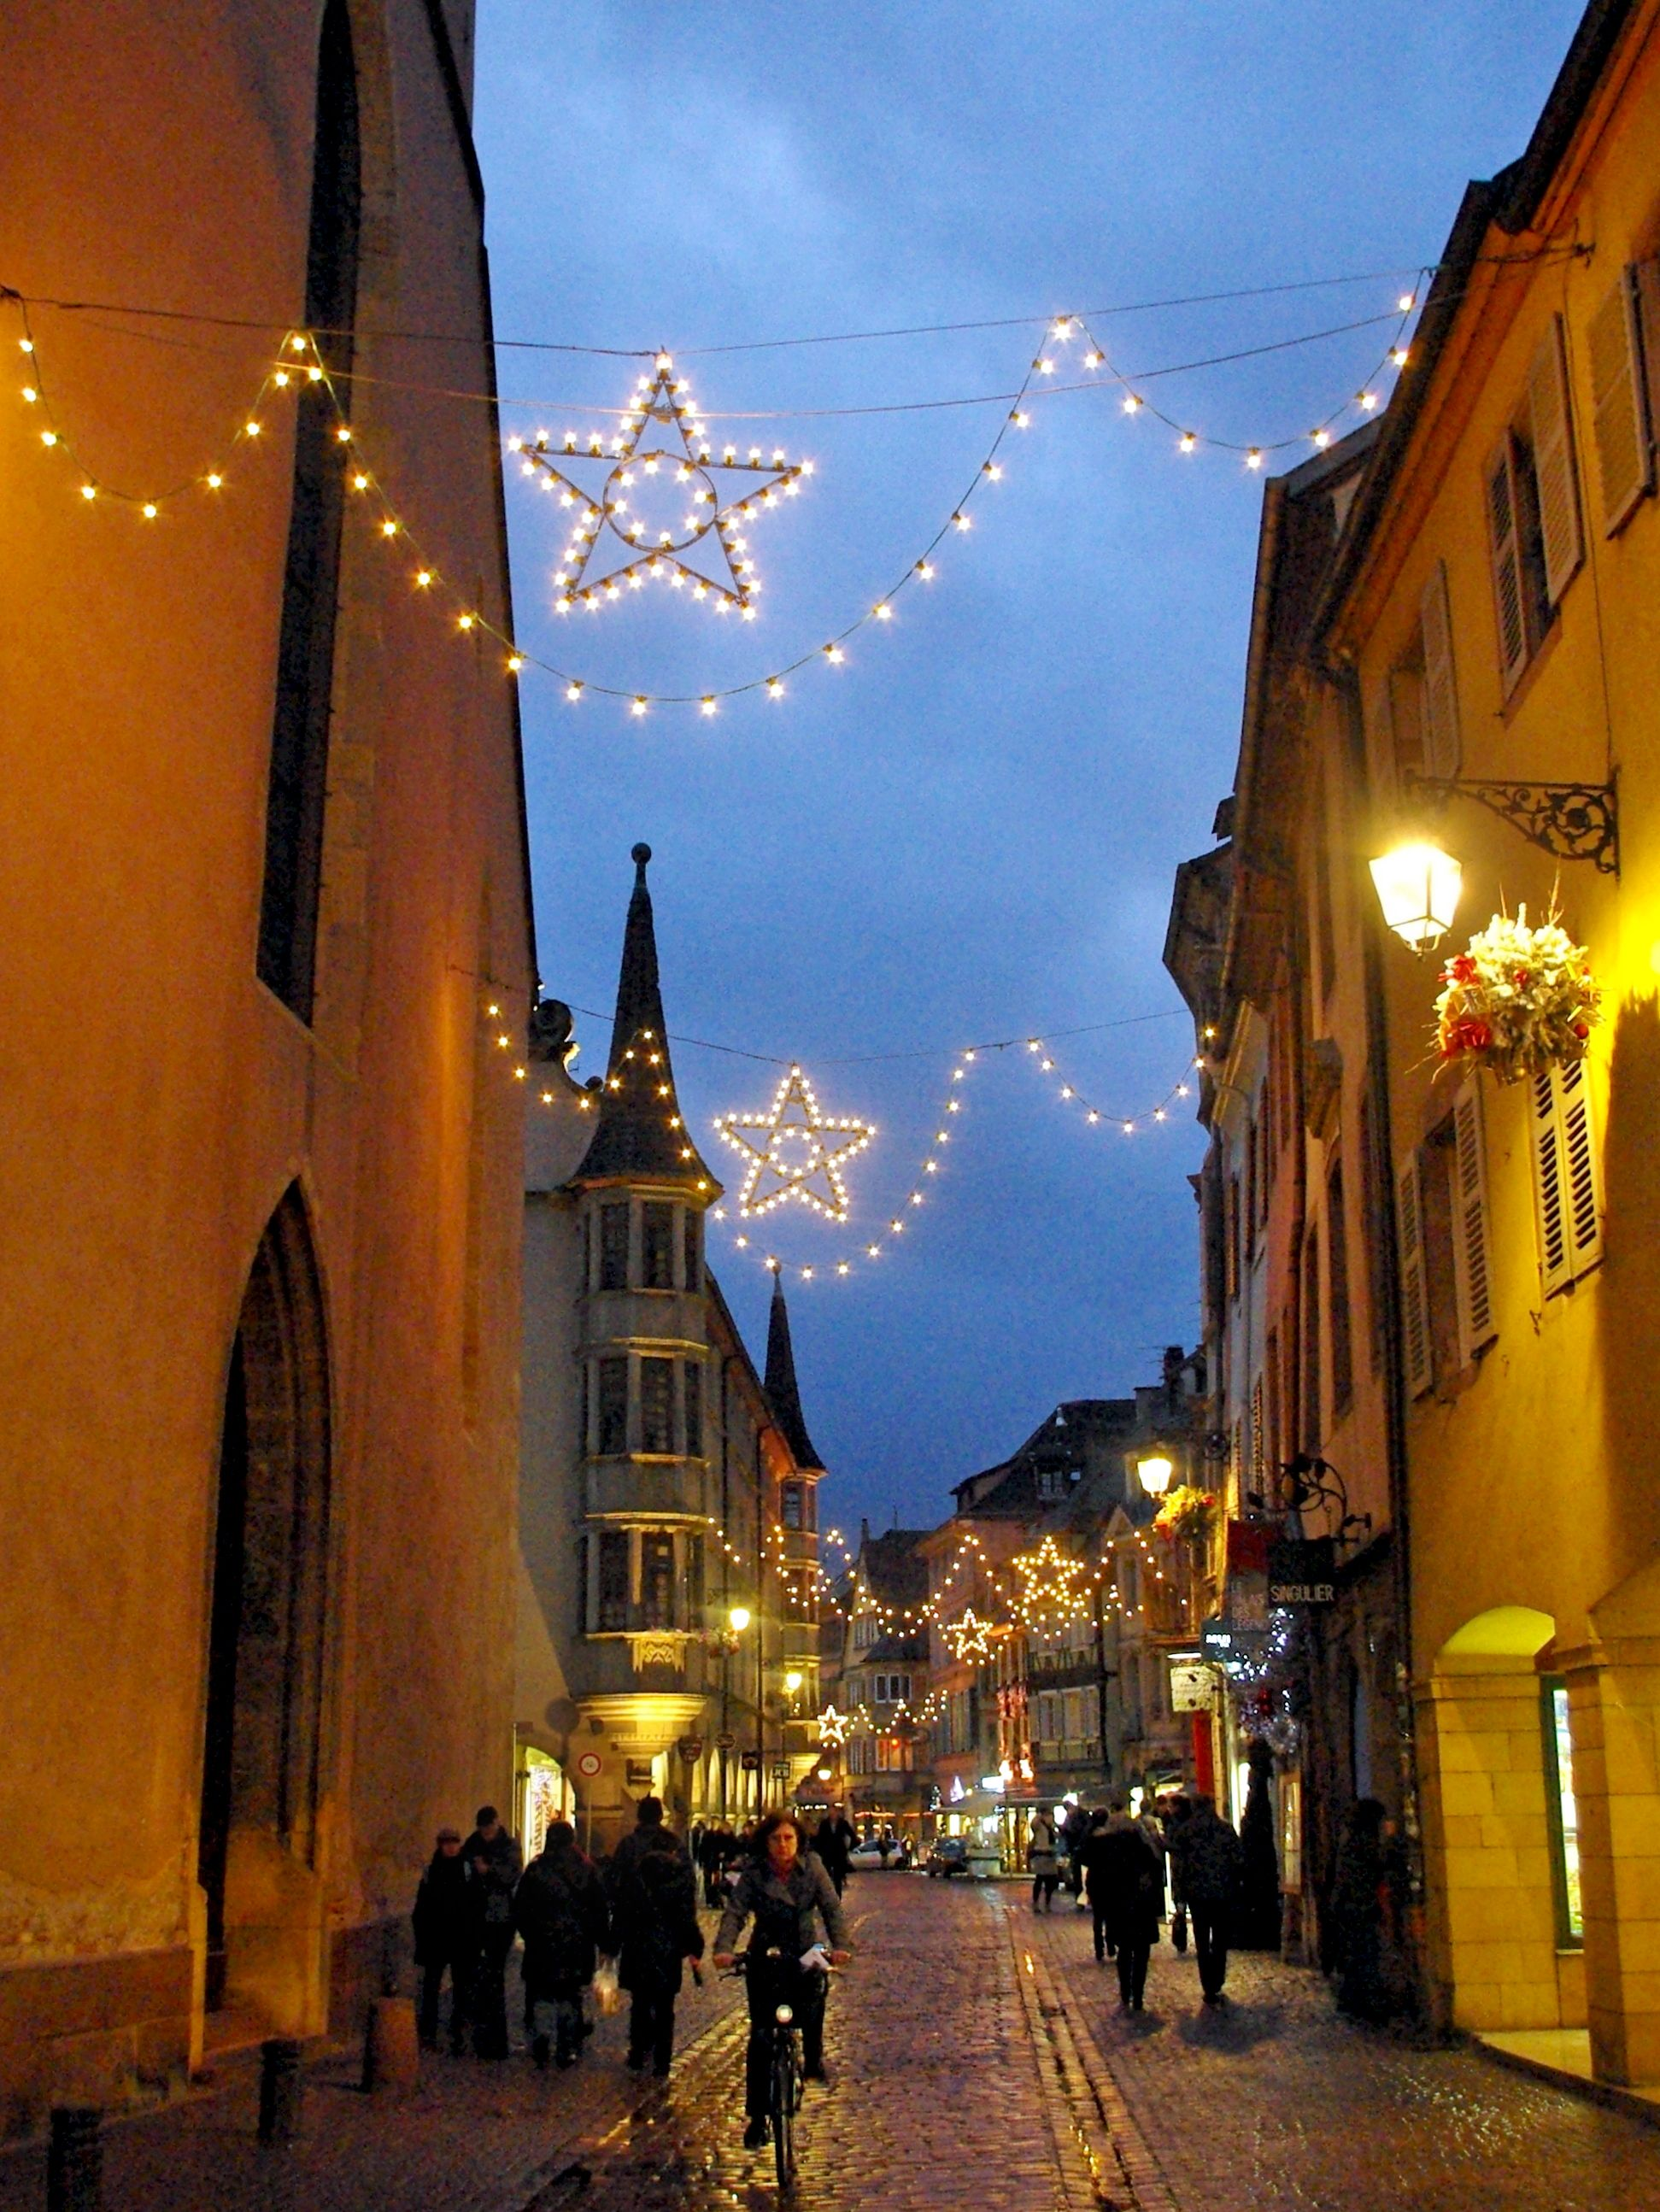 Great news! The Christmas market of Colmar opens today!! 🎄  #Colmar #VisitColmar #VisitAlsace